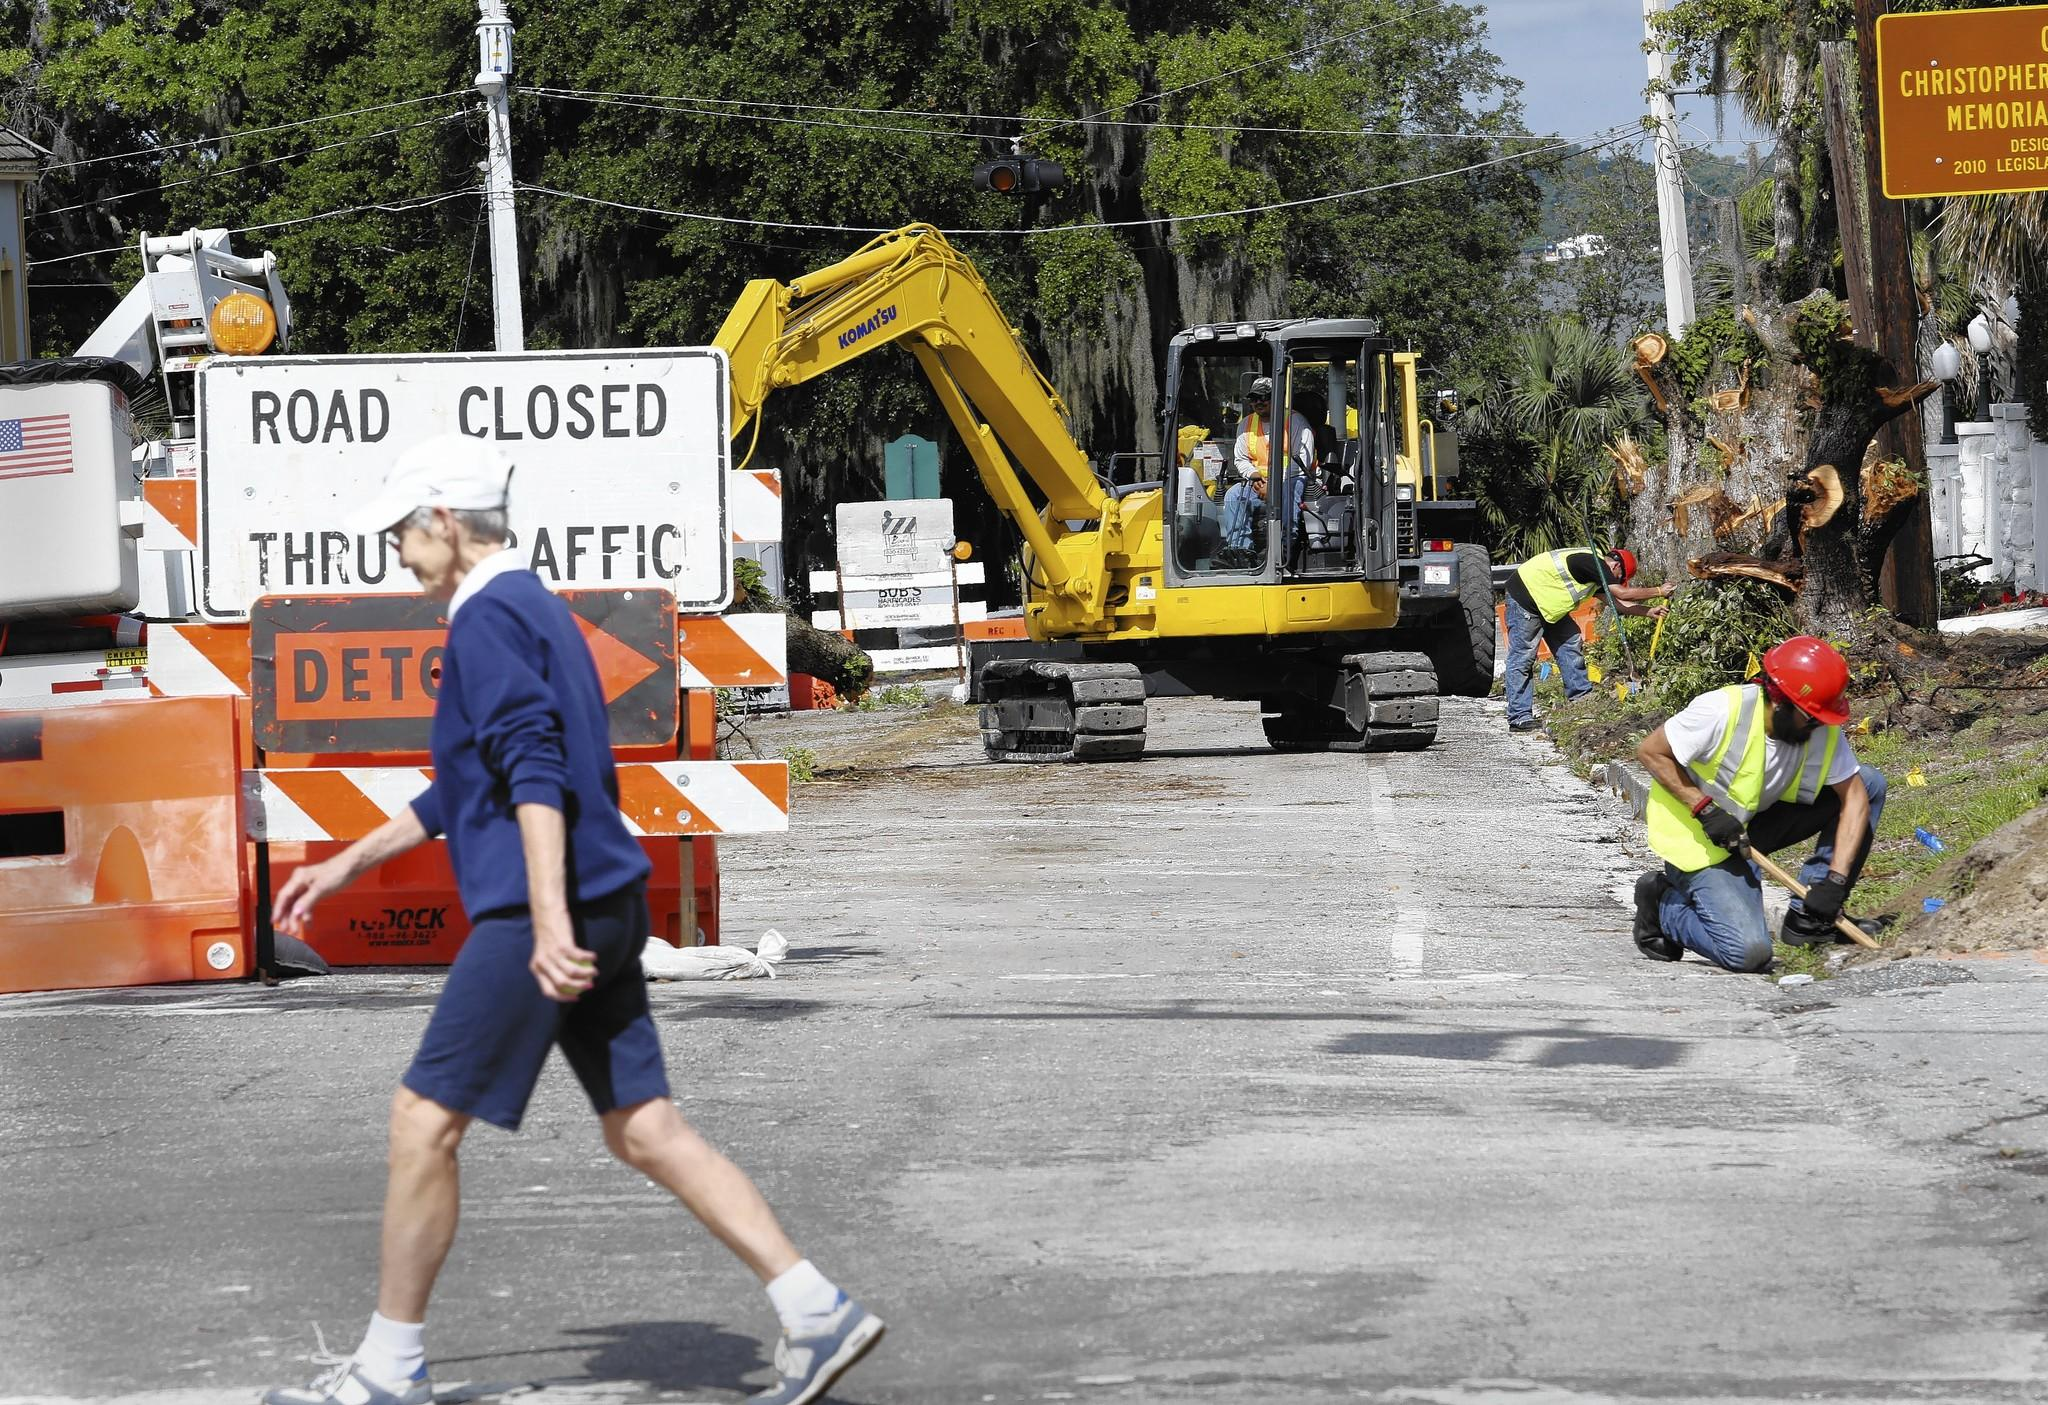 Work is underway on Friday, May 3, 2013, on 5th Ave. in Mount Dora. The work is part of a $3.8 million streetscape project.